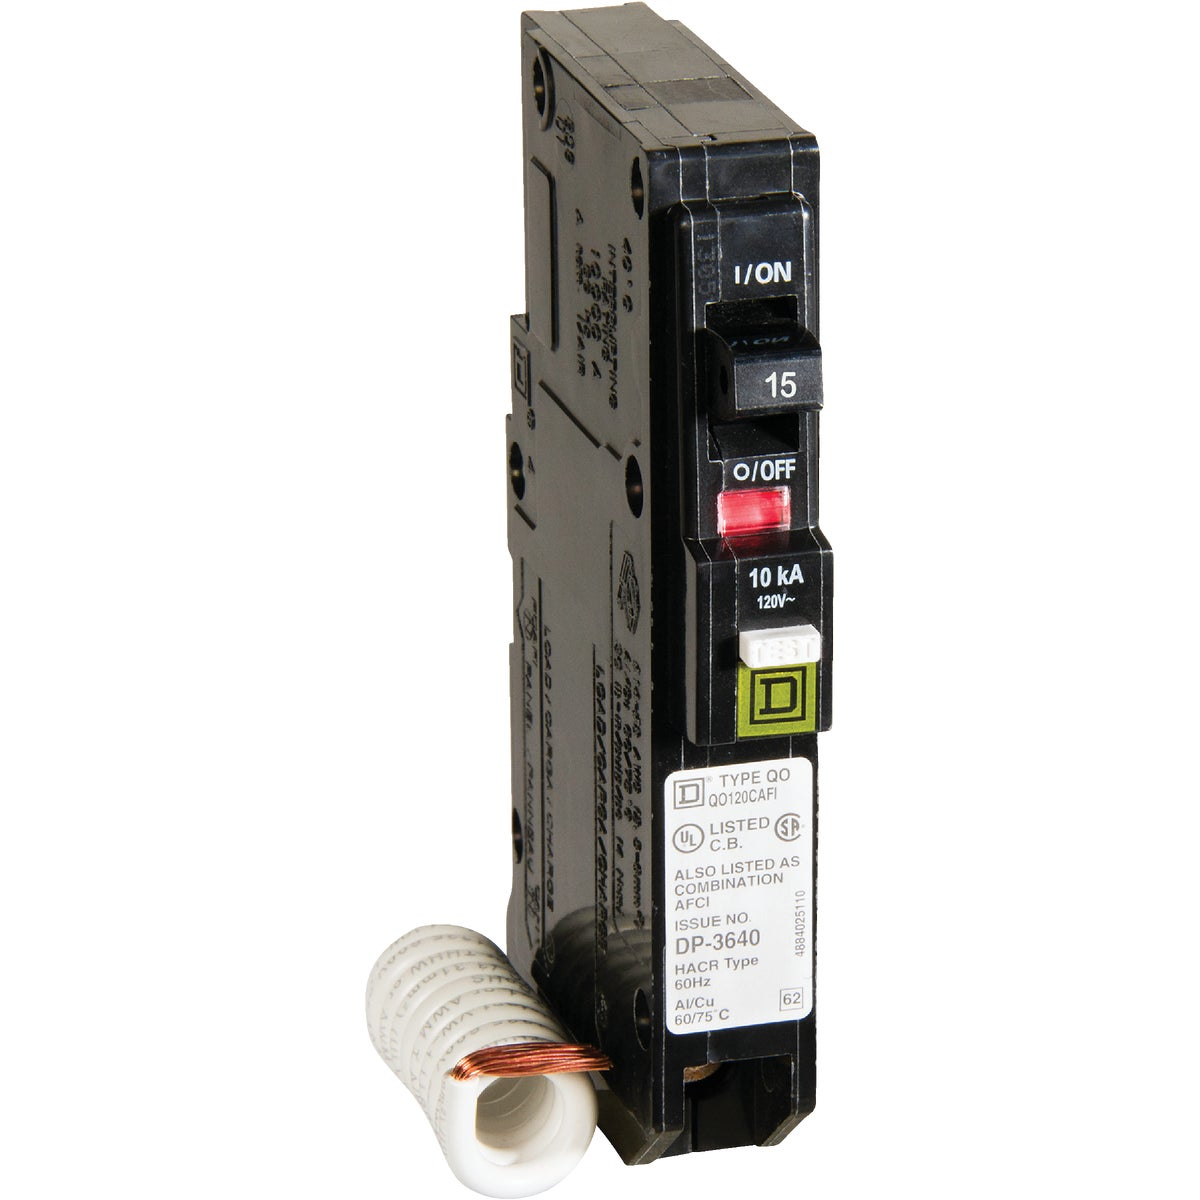 COMBO ARC FAULT BREAKER - QO115CAFIC by Square D Co